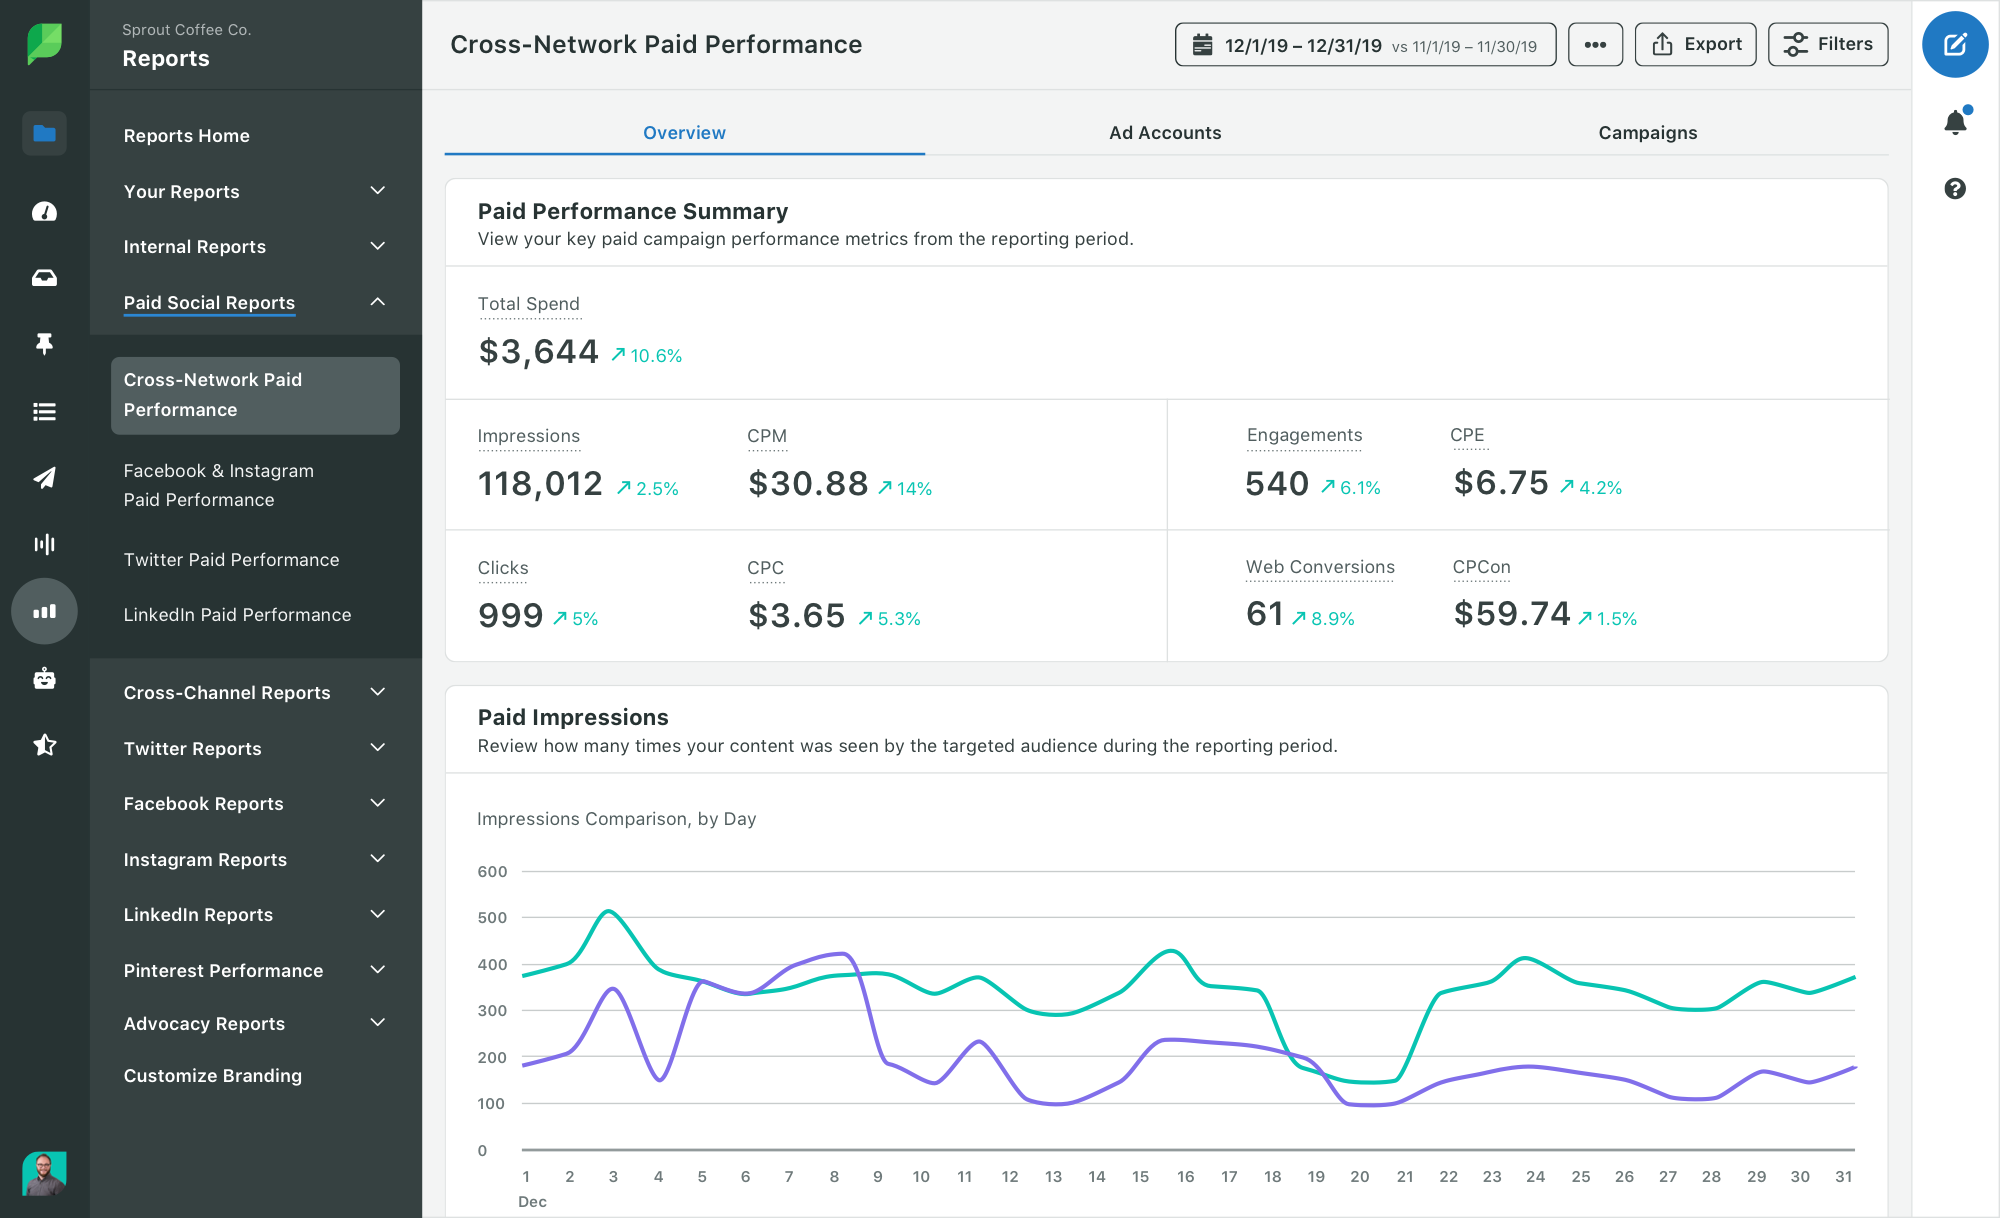 Facebook analytics tools cross network performance report in Sprout Social